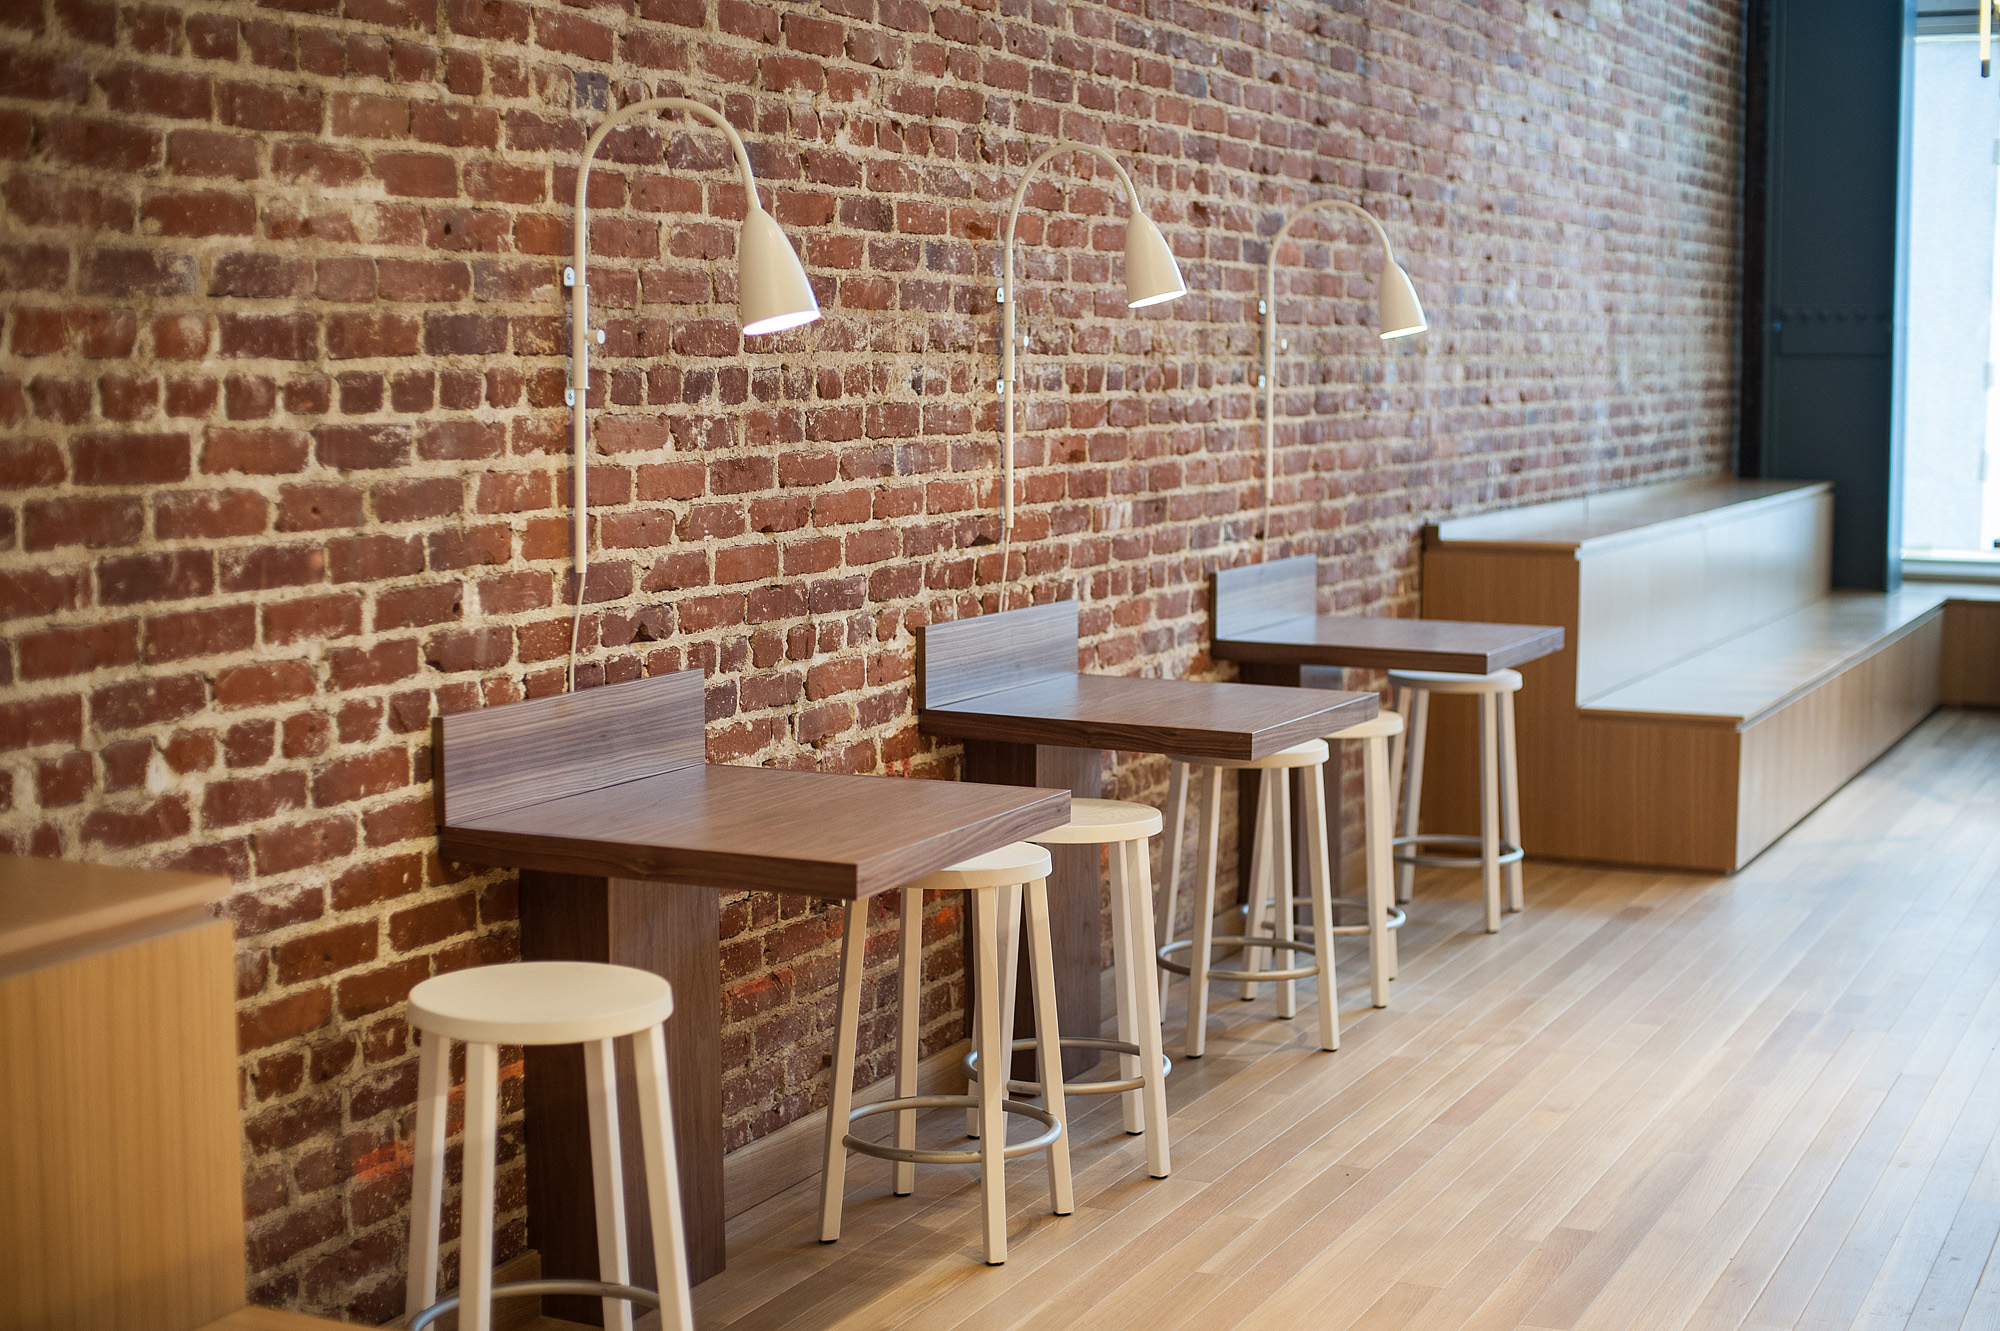 Blue Bottle Coffee S Echo Park Outlet Works From All The